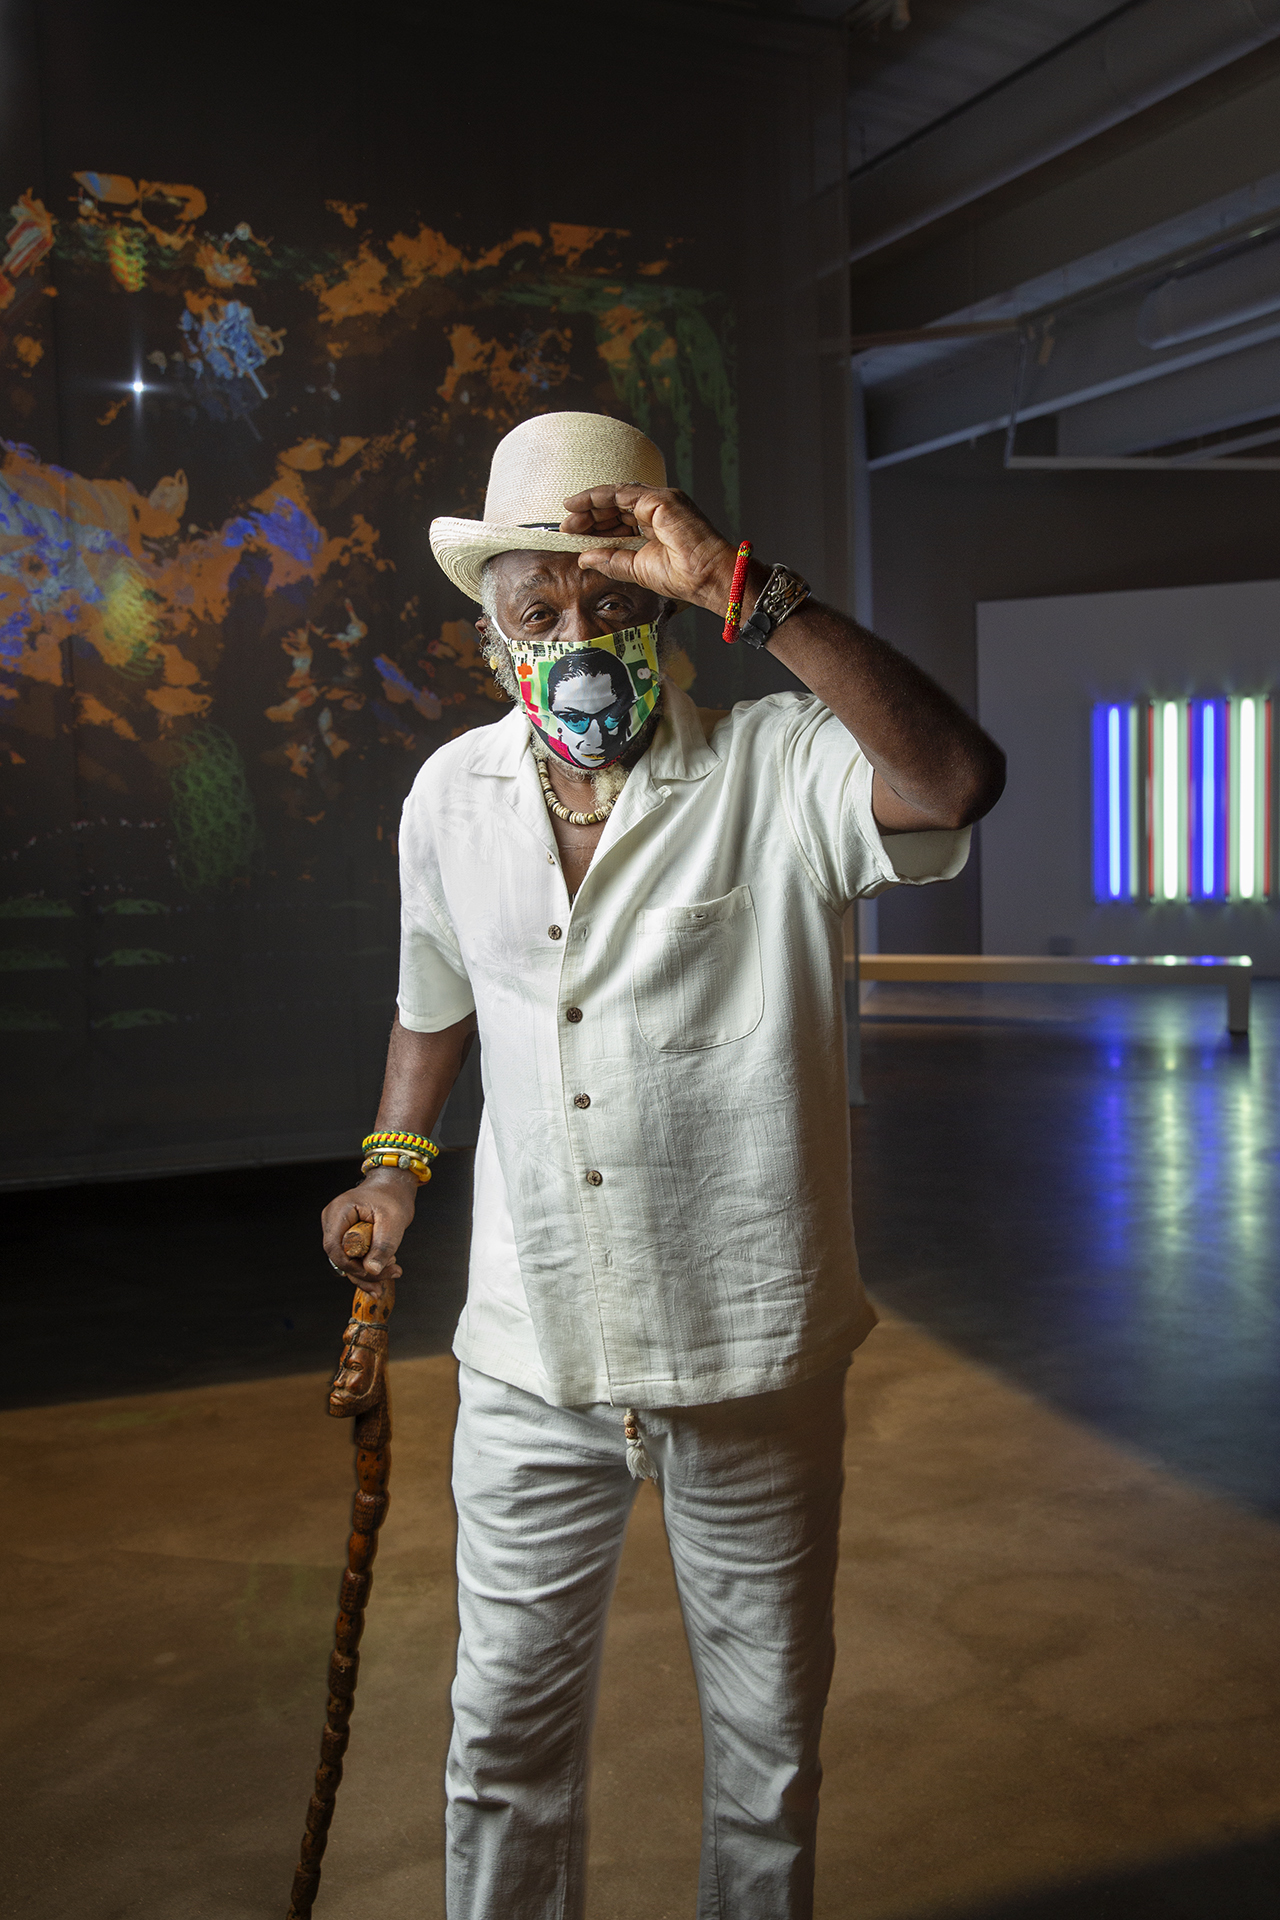 A figure with a hat and cane poses in front of an interactive light sculpture in a gallery space